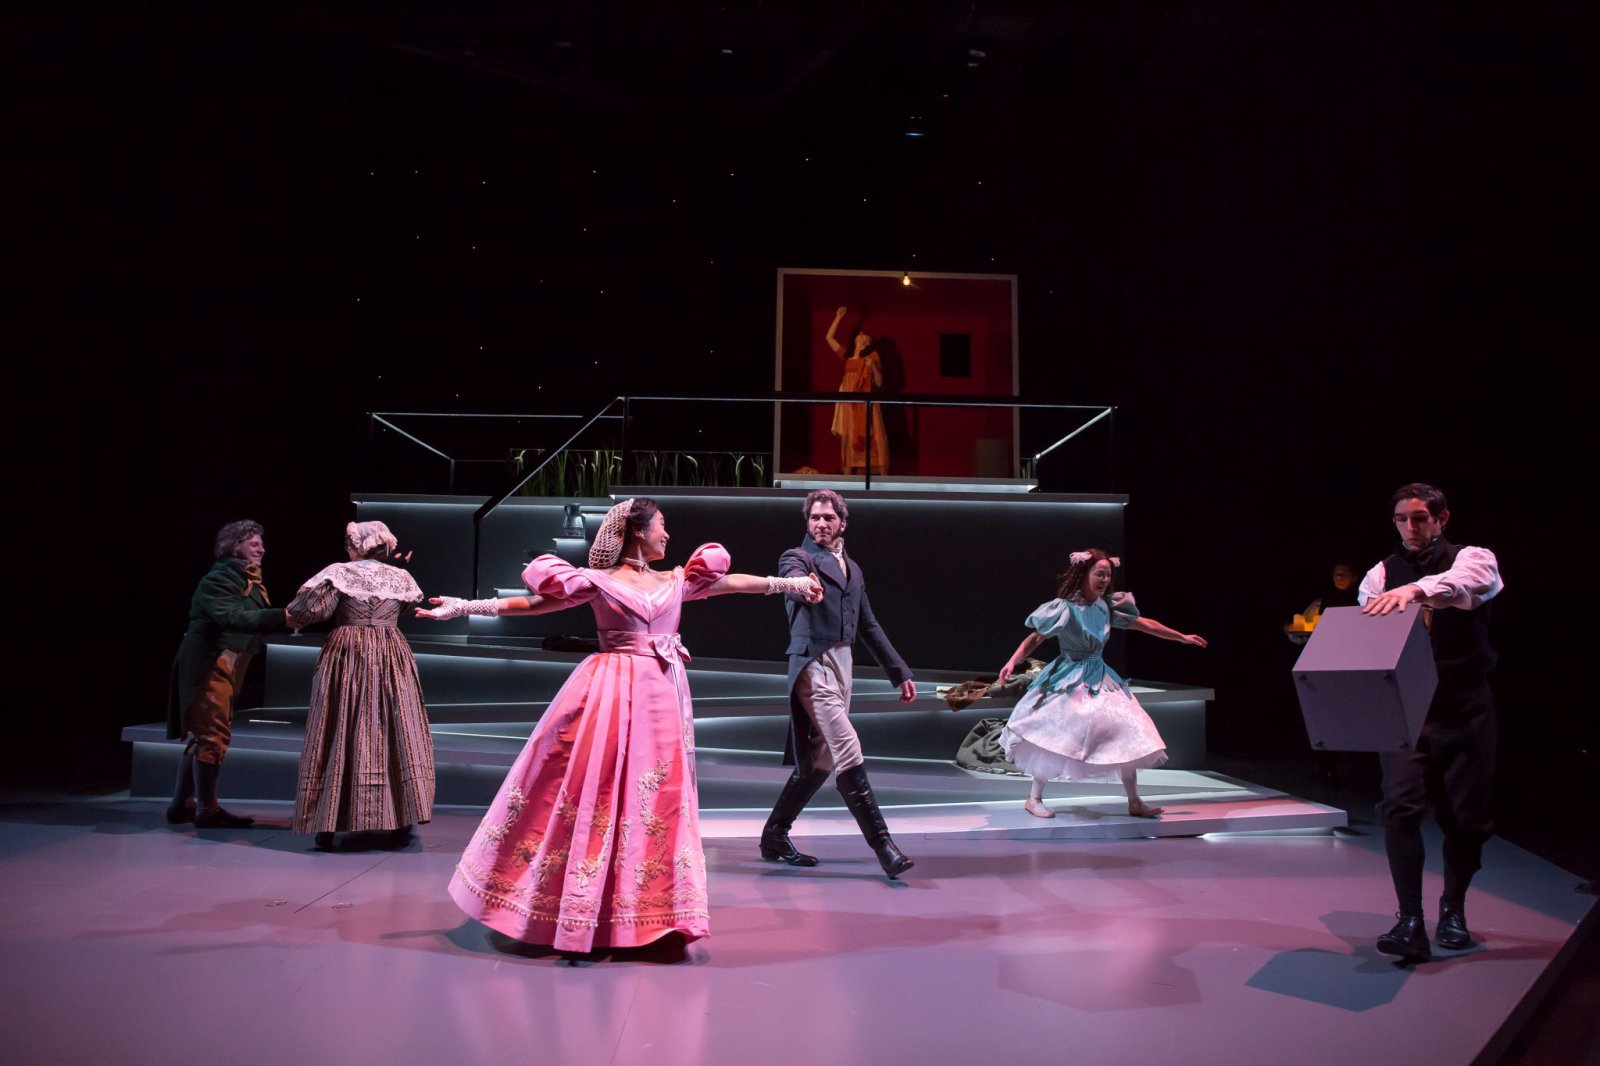 Milwaukee Repertory Theater presents the cast of Jane Eyre in the Quadracci Powerhouse from April 25 to May 21, 2017